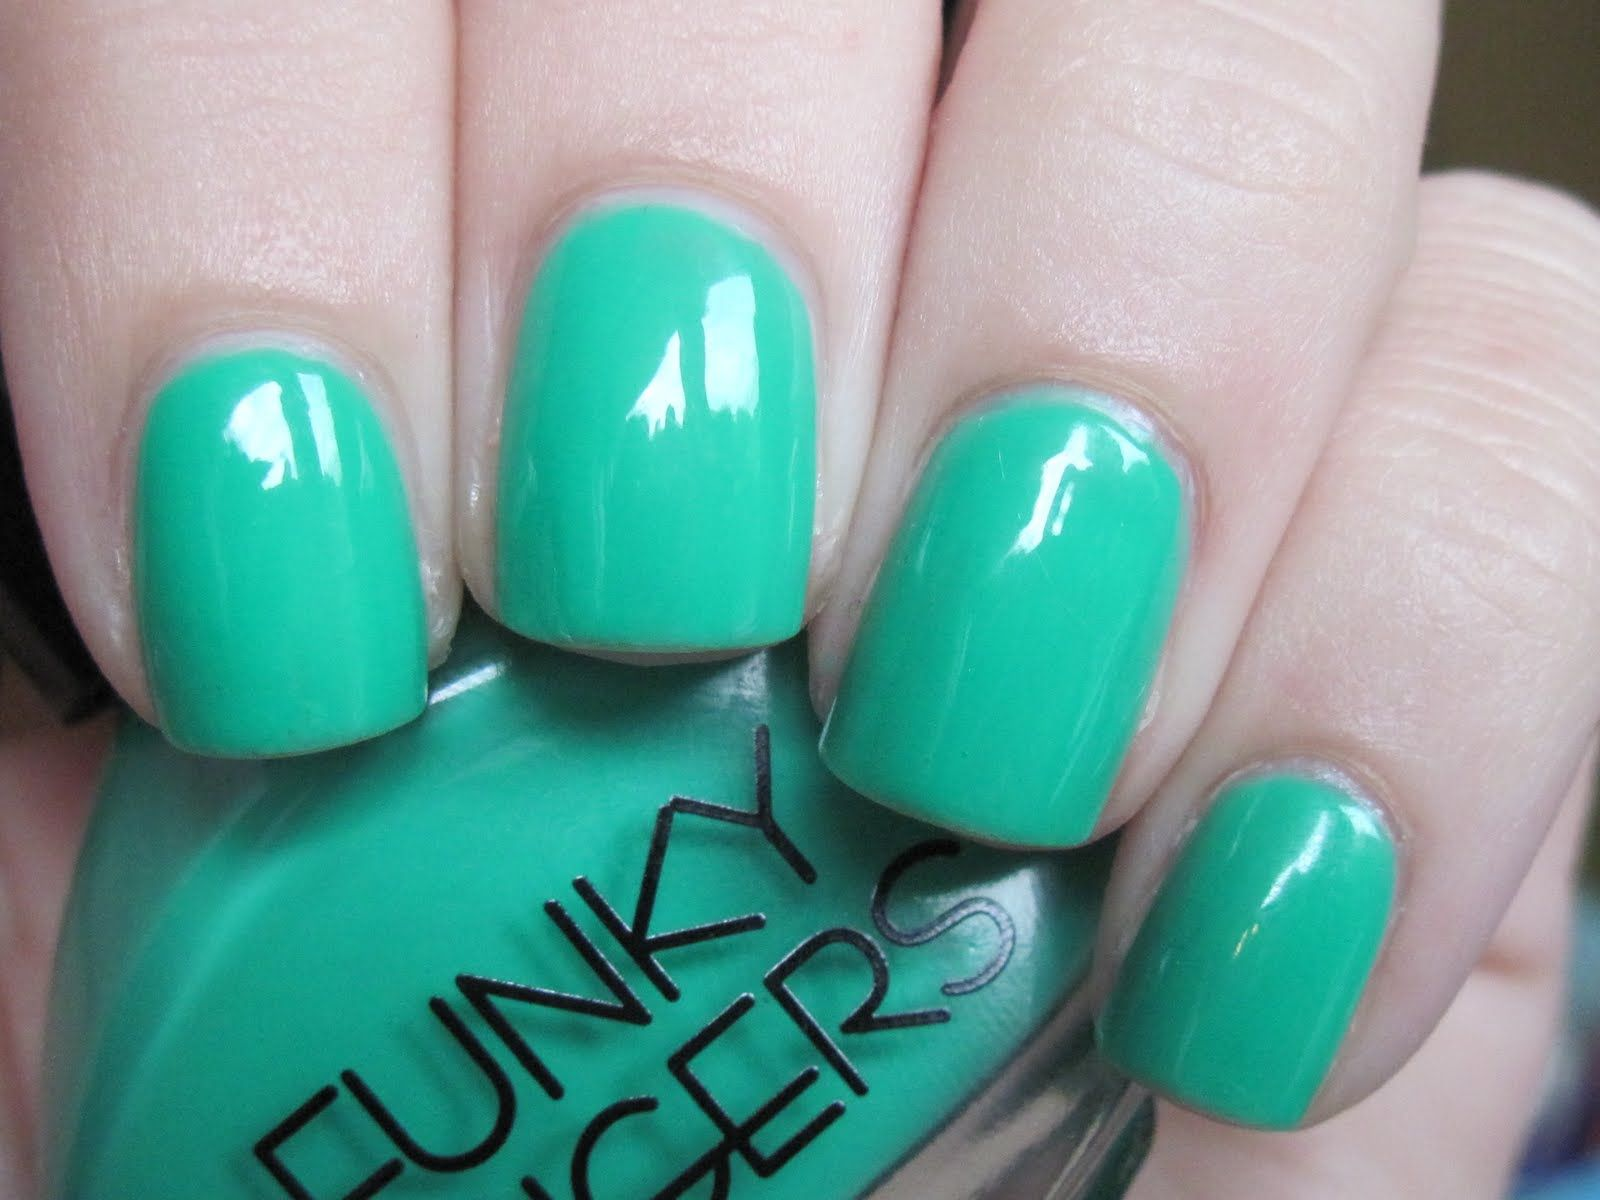 funky fingers - bizerk turq | Nails | Pinterest | Funky fingers ...